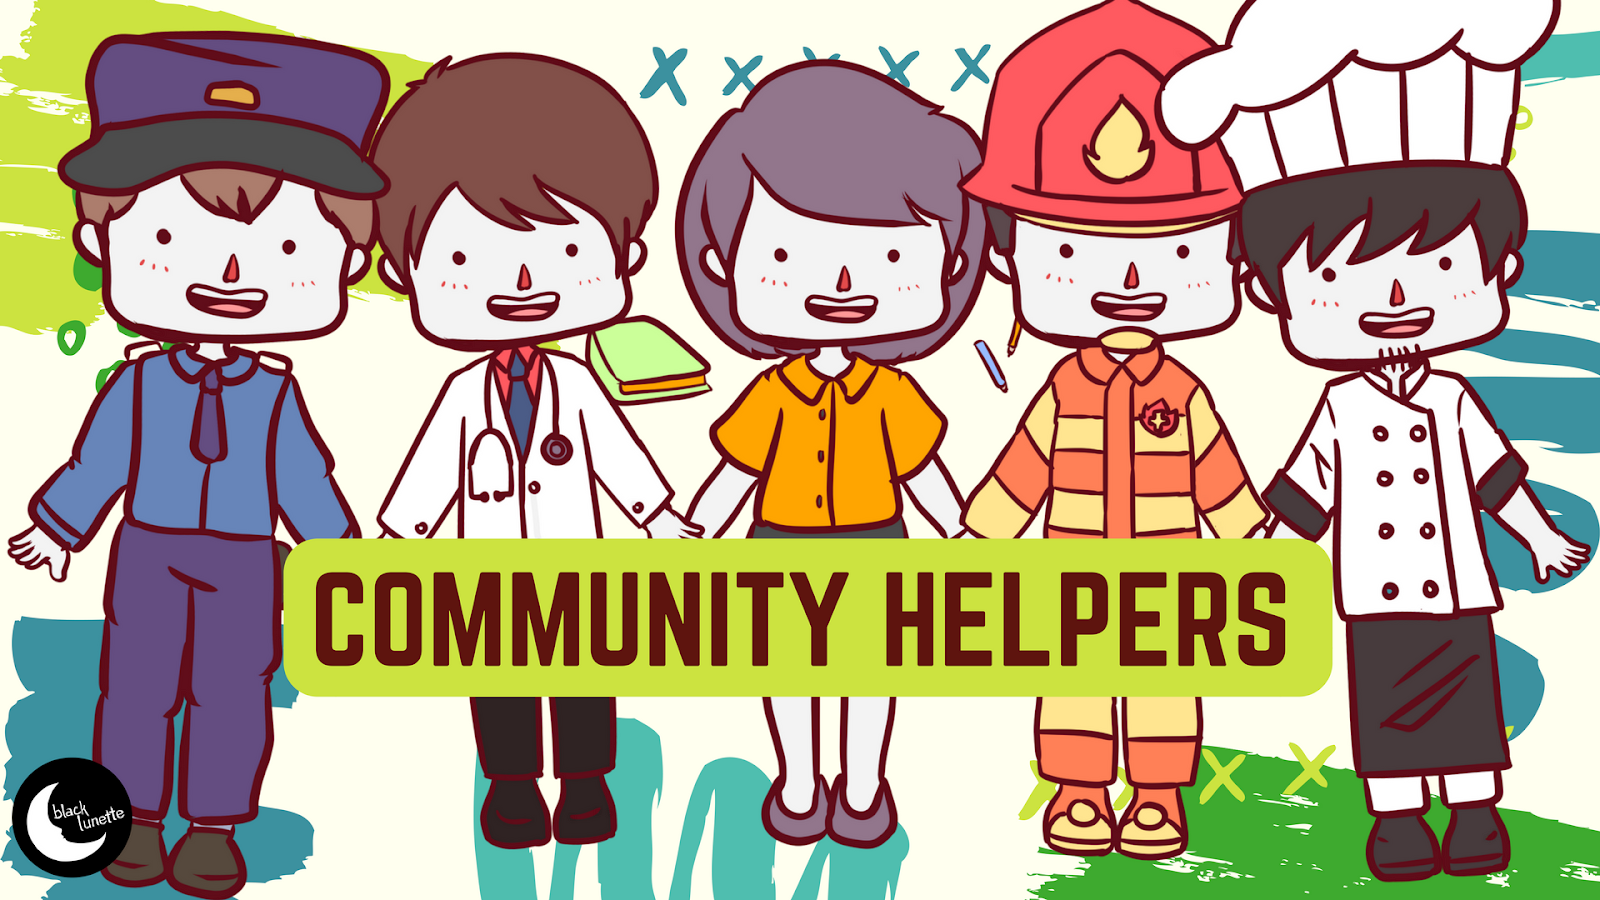 hight resolution of community helpers clipart free download